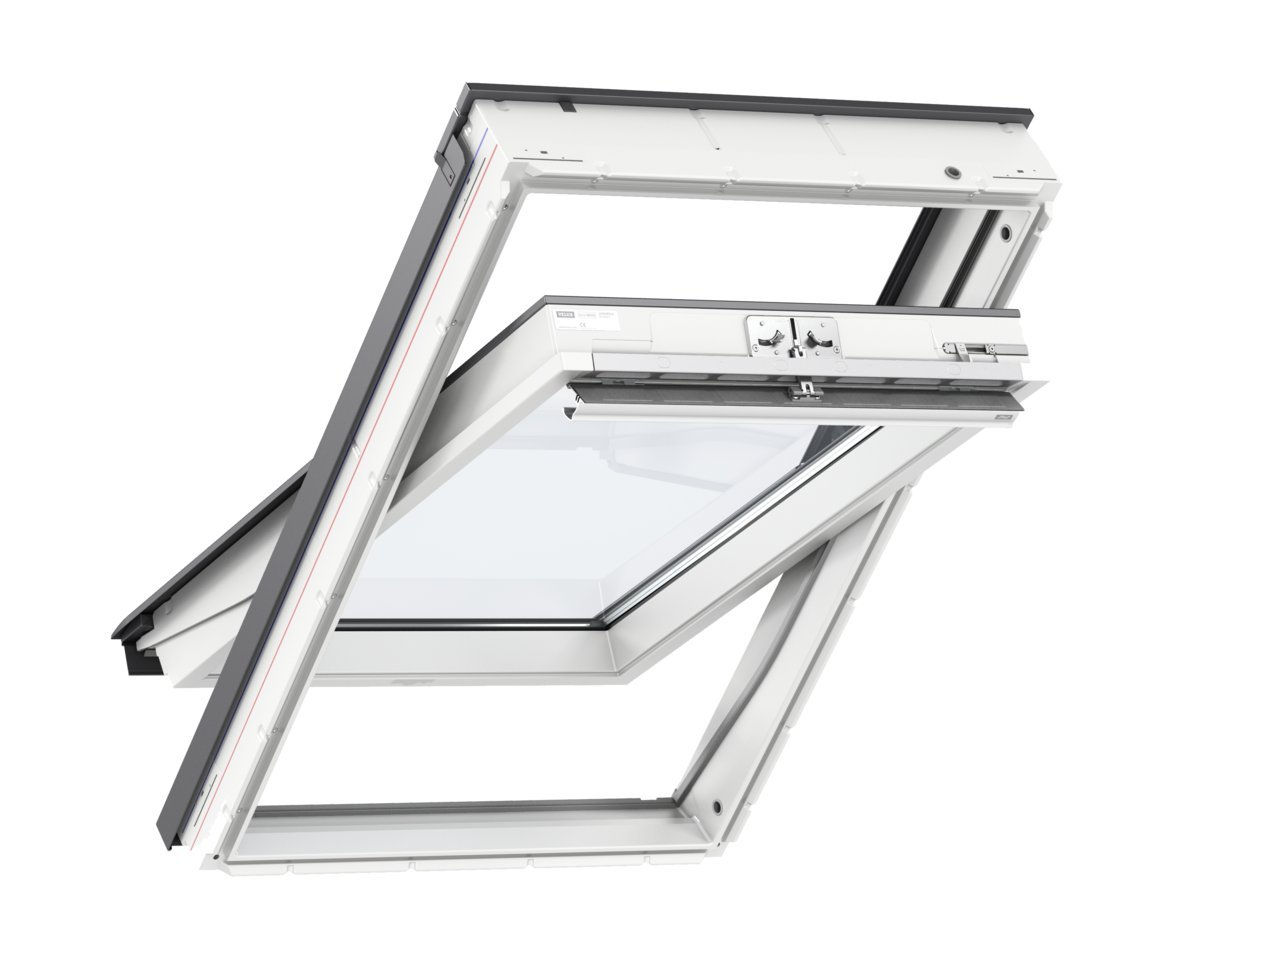 Full Size of Velux Scharnier Original Veludachfenster Kunststoff Thermo Star 78 160 Mit Fenster Rollo Einbauen Kaufen Ersatzteile Preise Wohnzimmer Velux Scharnier